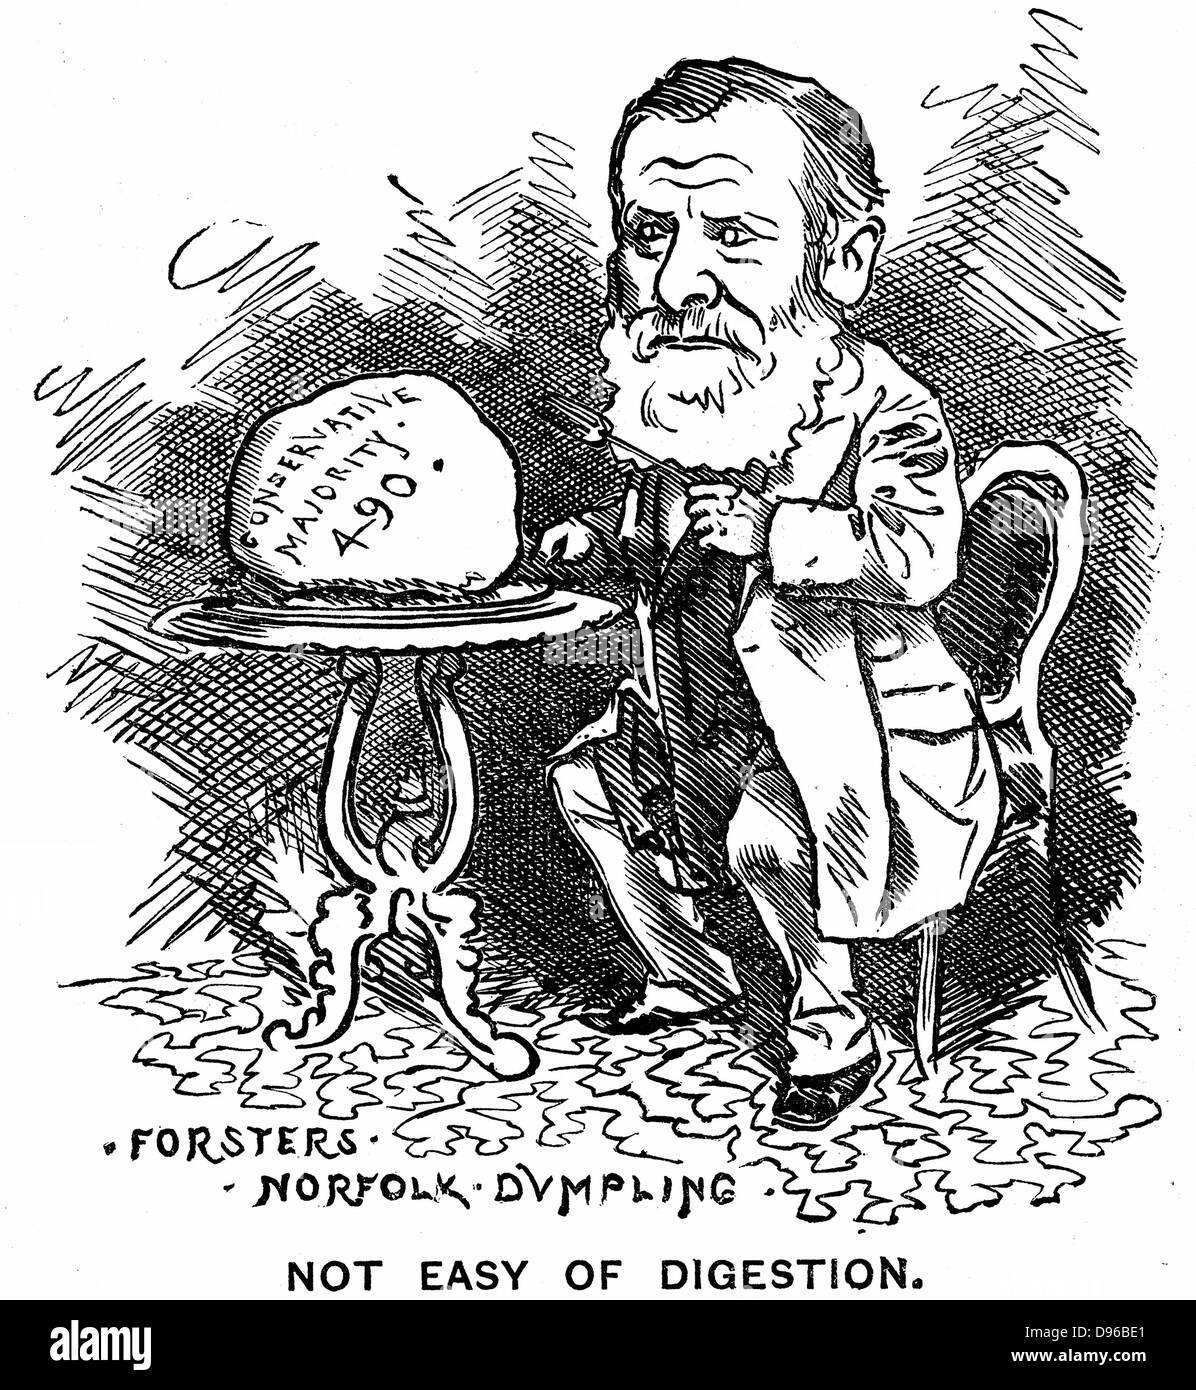 William Edward Forster (1818-1886), British Liberal politician. Cartoon from 'Punch', London, 1879. Engraving. - Stock Image